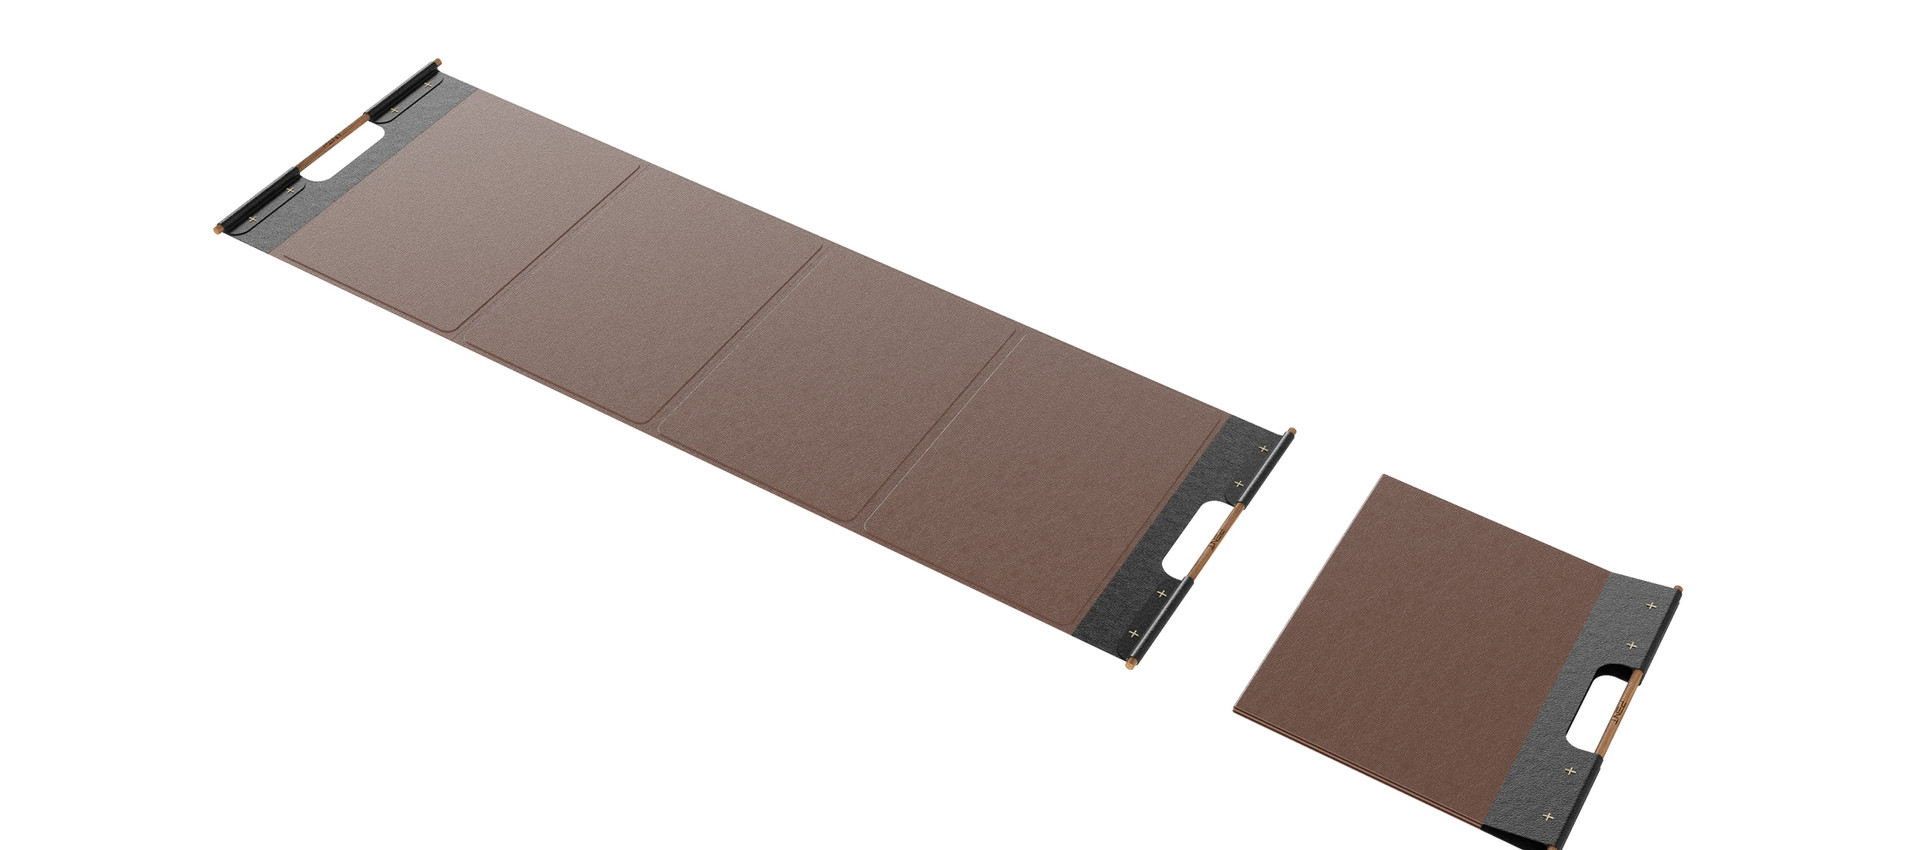 MATA Luxury leather fitness mat.jpg